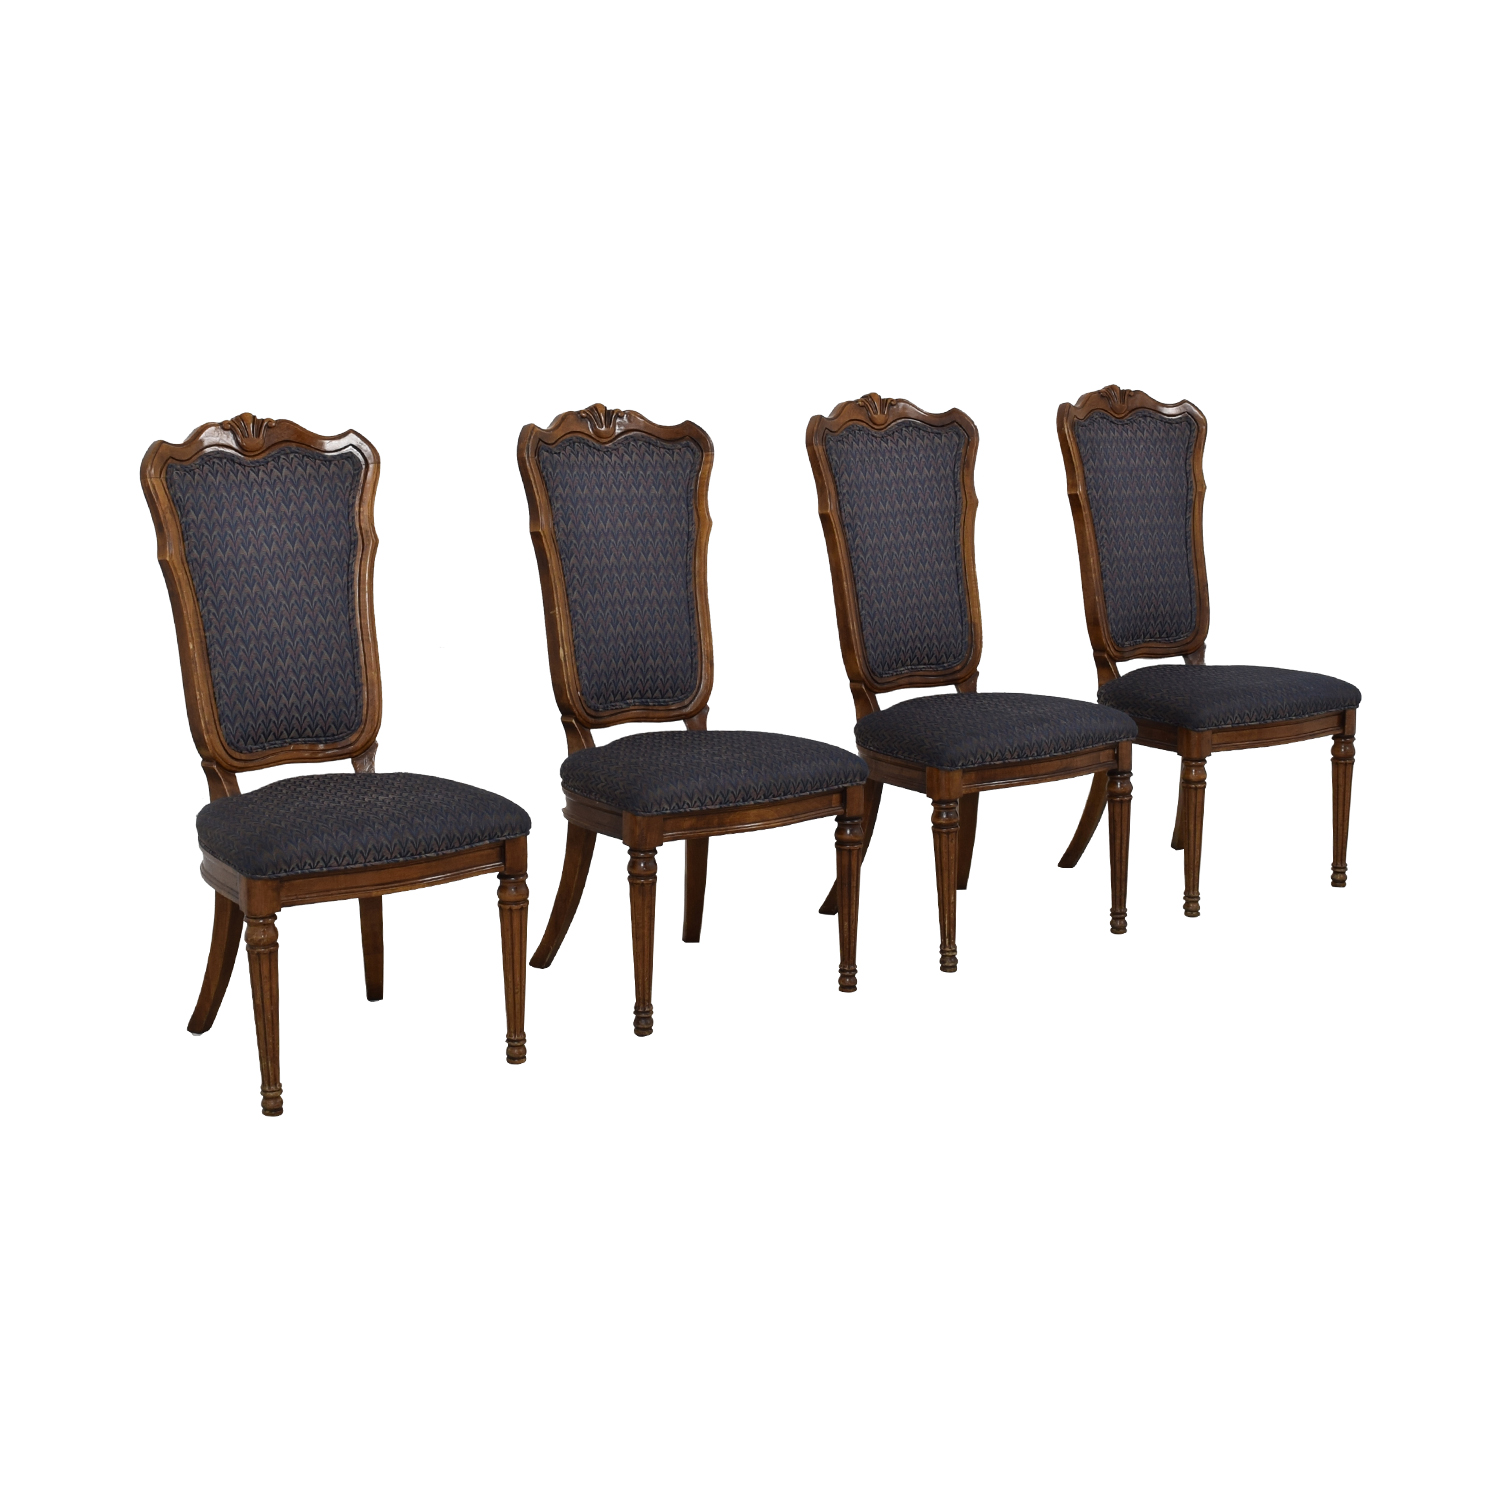 Printed Upholstered Dining Chairs / Tables